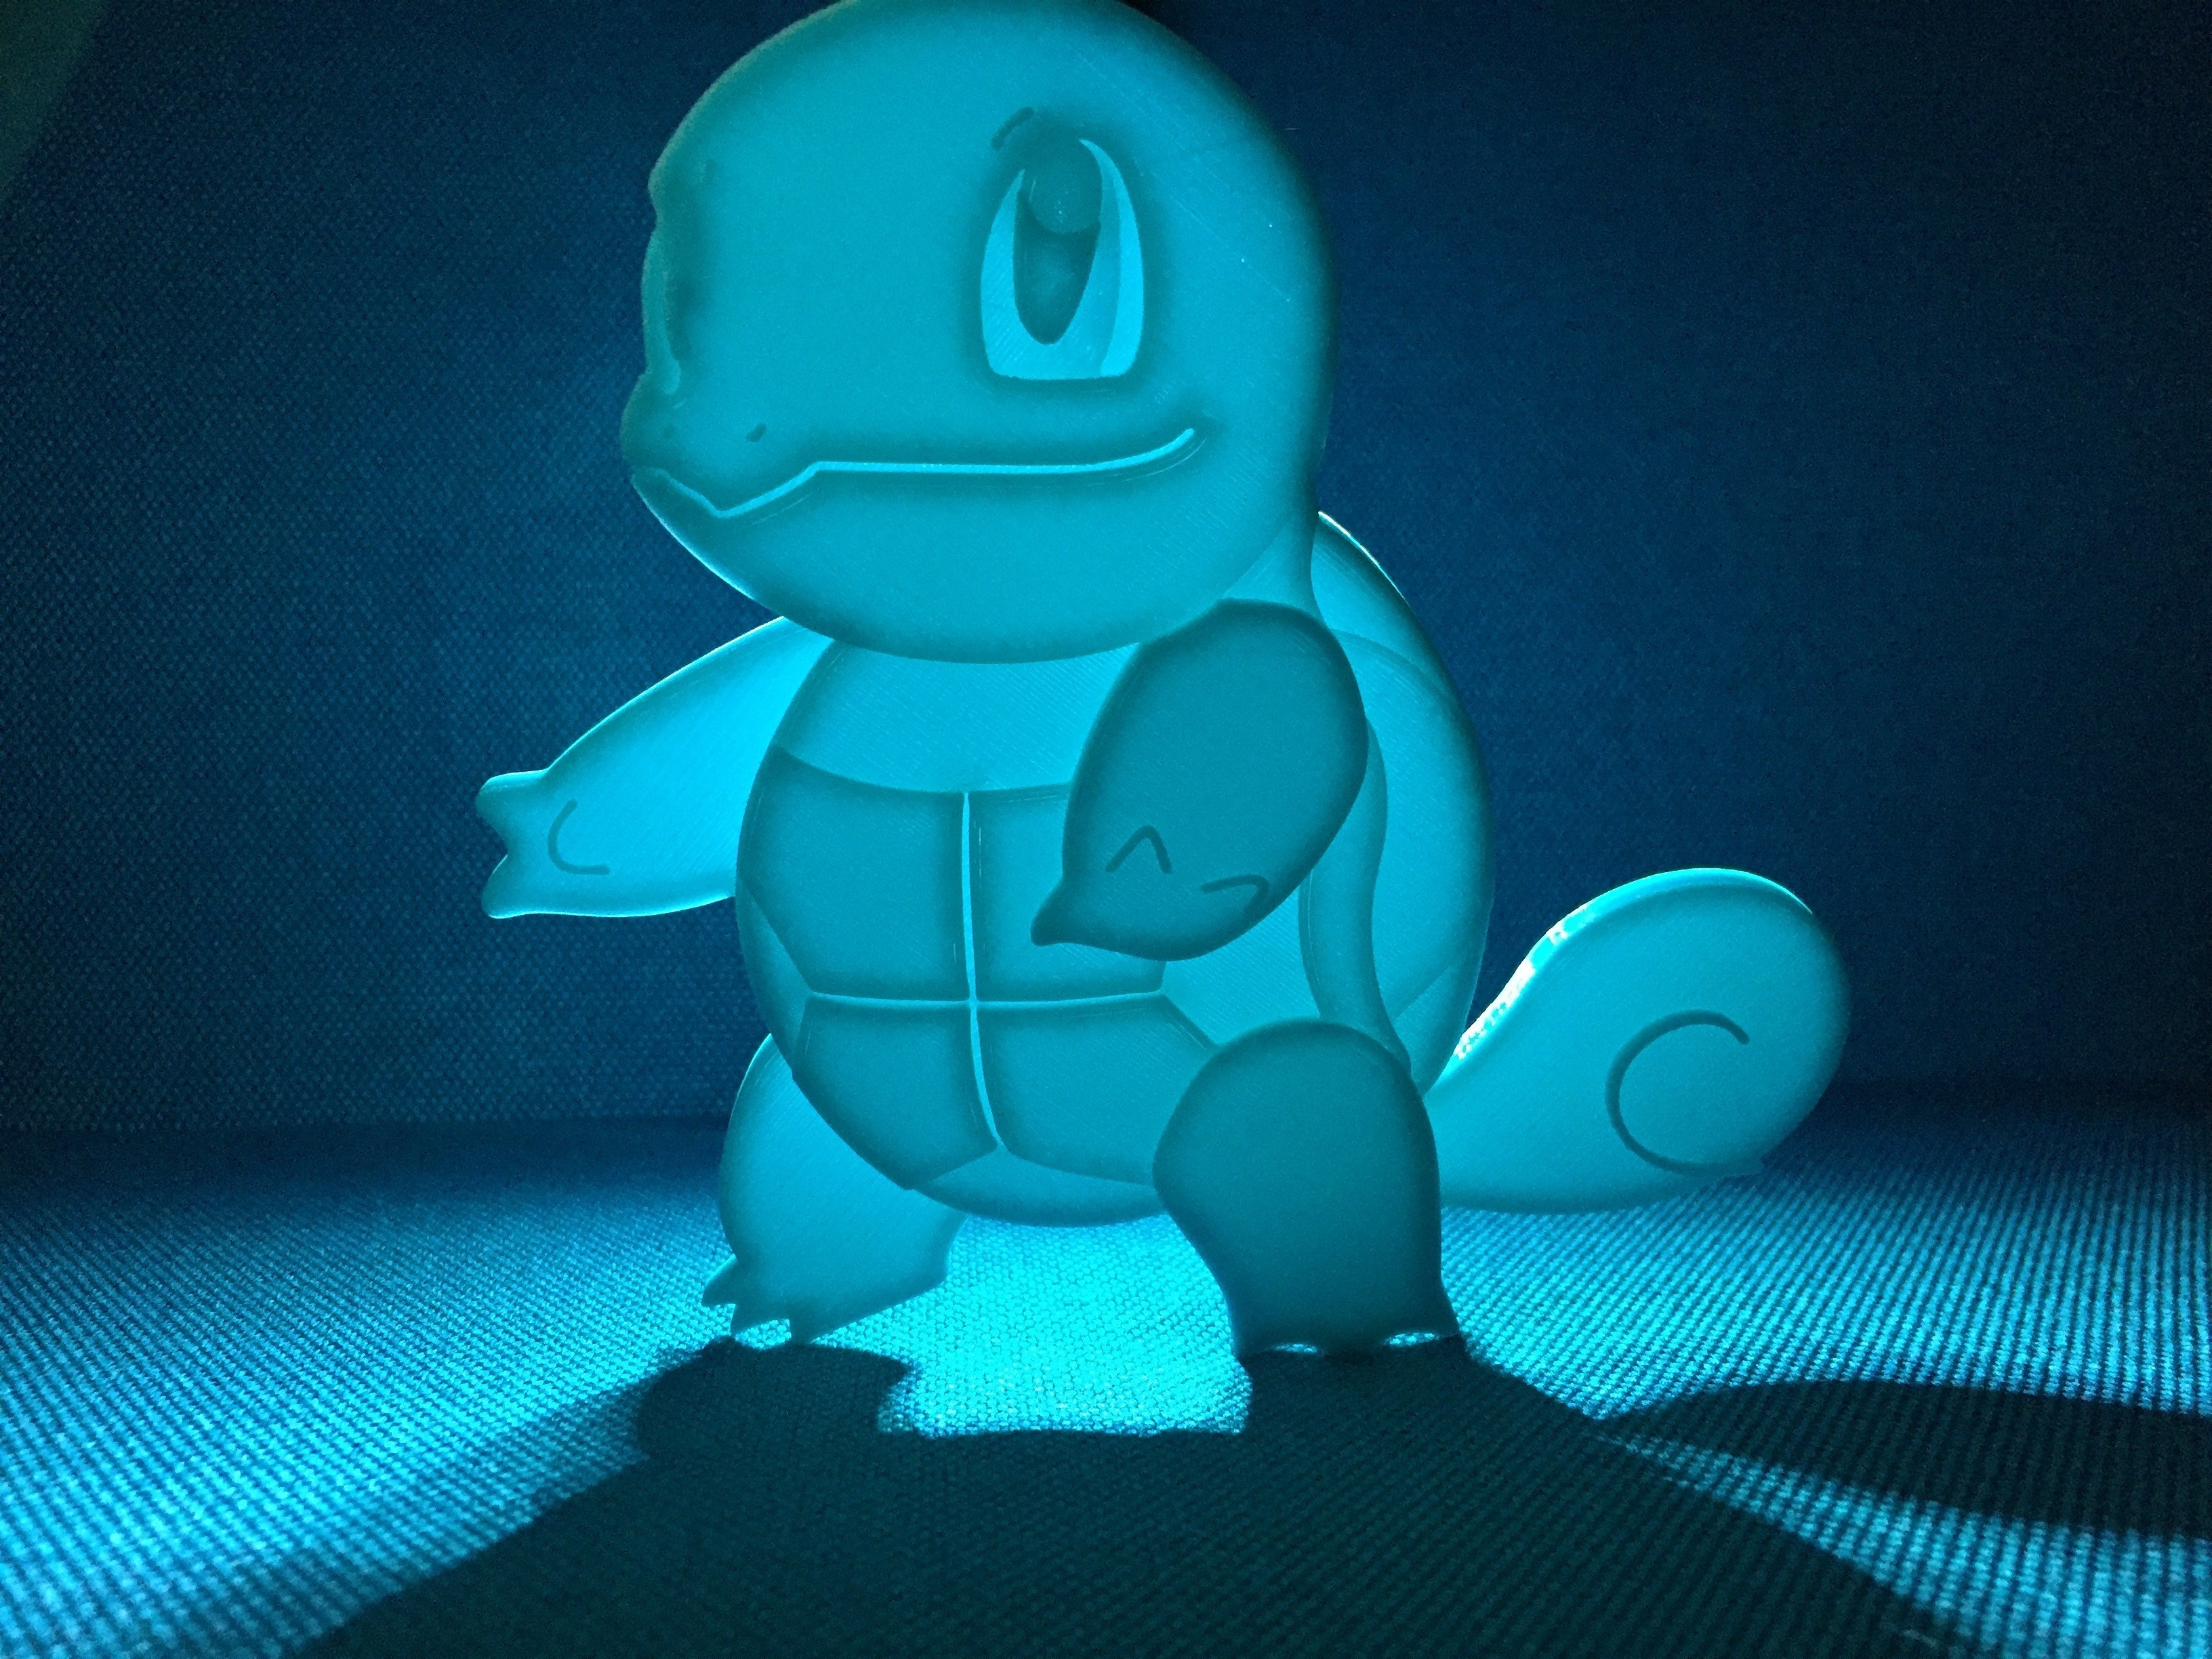 IMG_6954.jpg Download free STL file Squirtle • 3D printing object, upperpeninsulaplastics